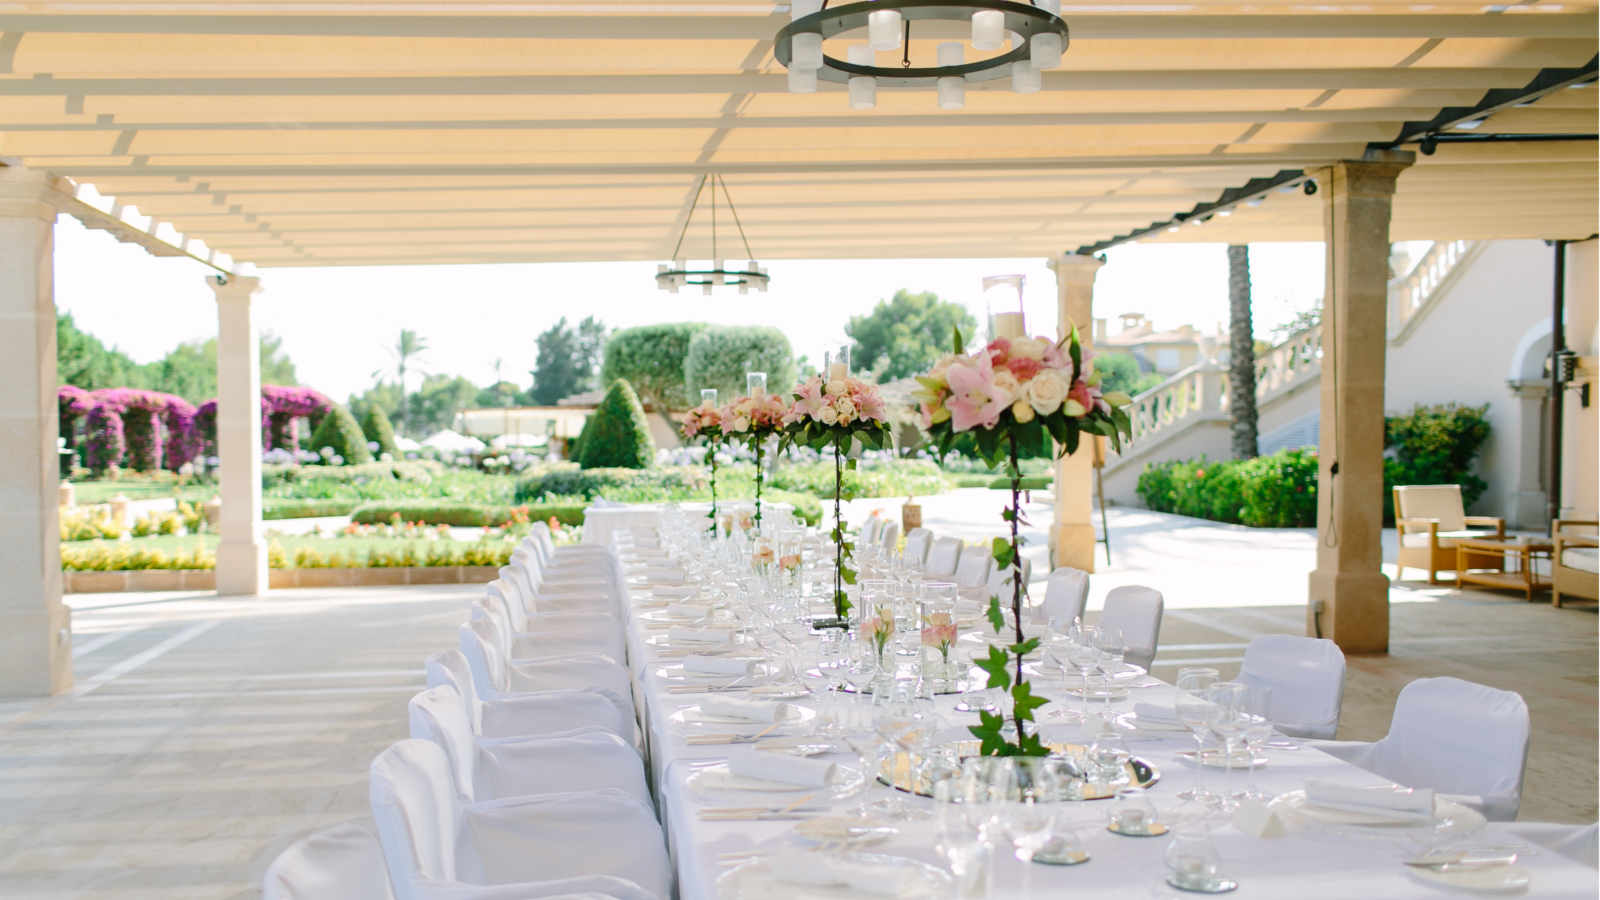 Table decoration ideas for your wedding at the St. Regis Mardavall Mallorca